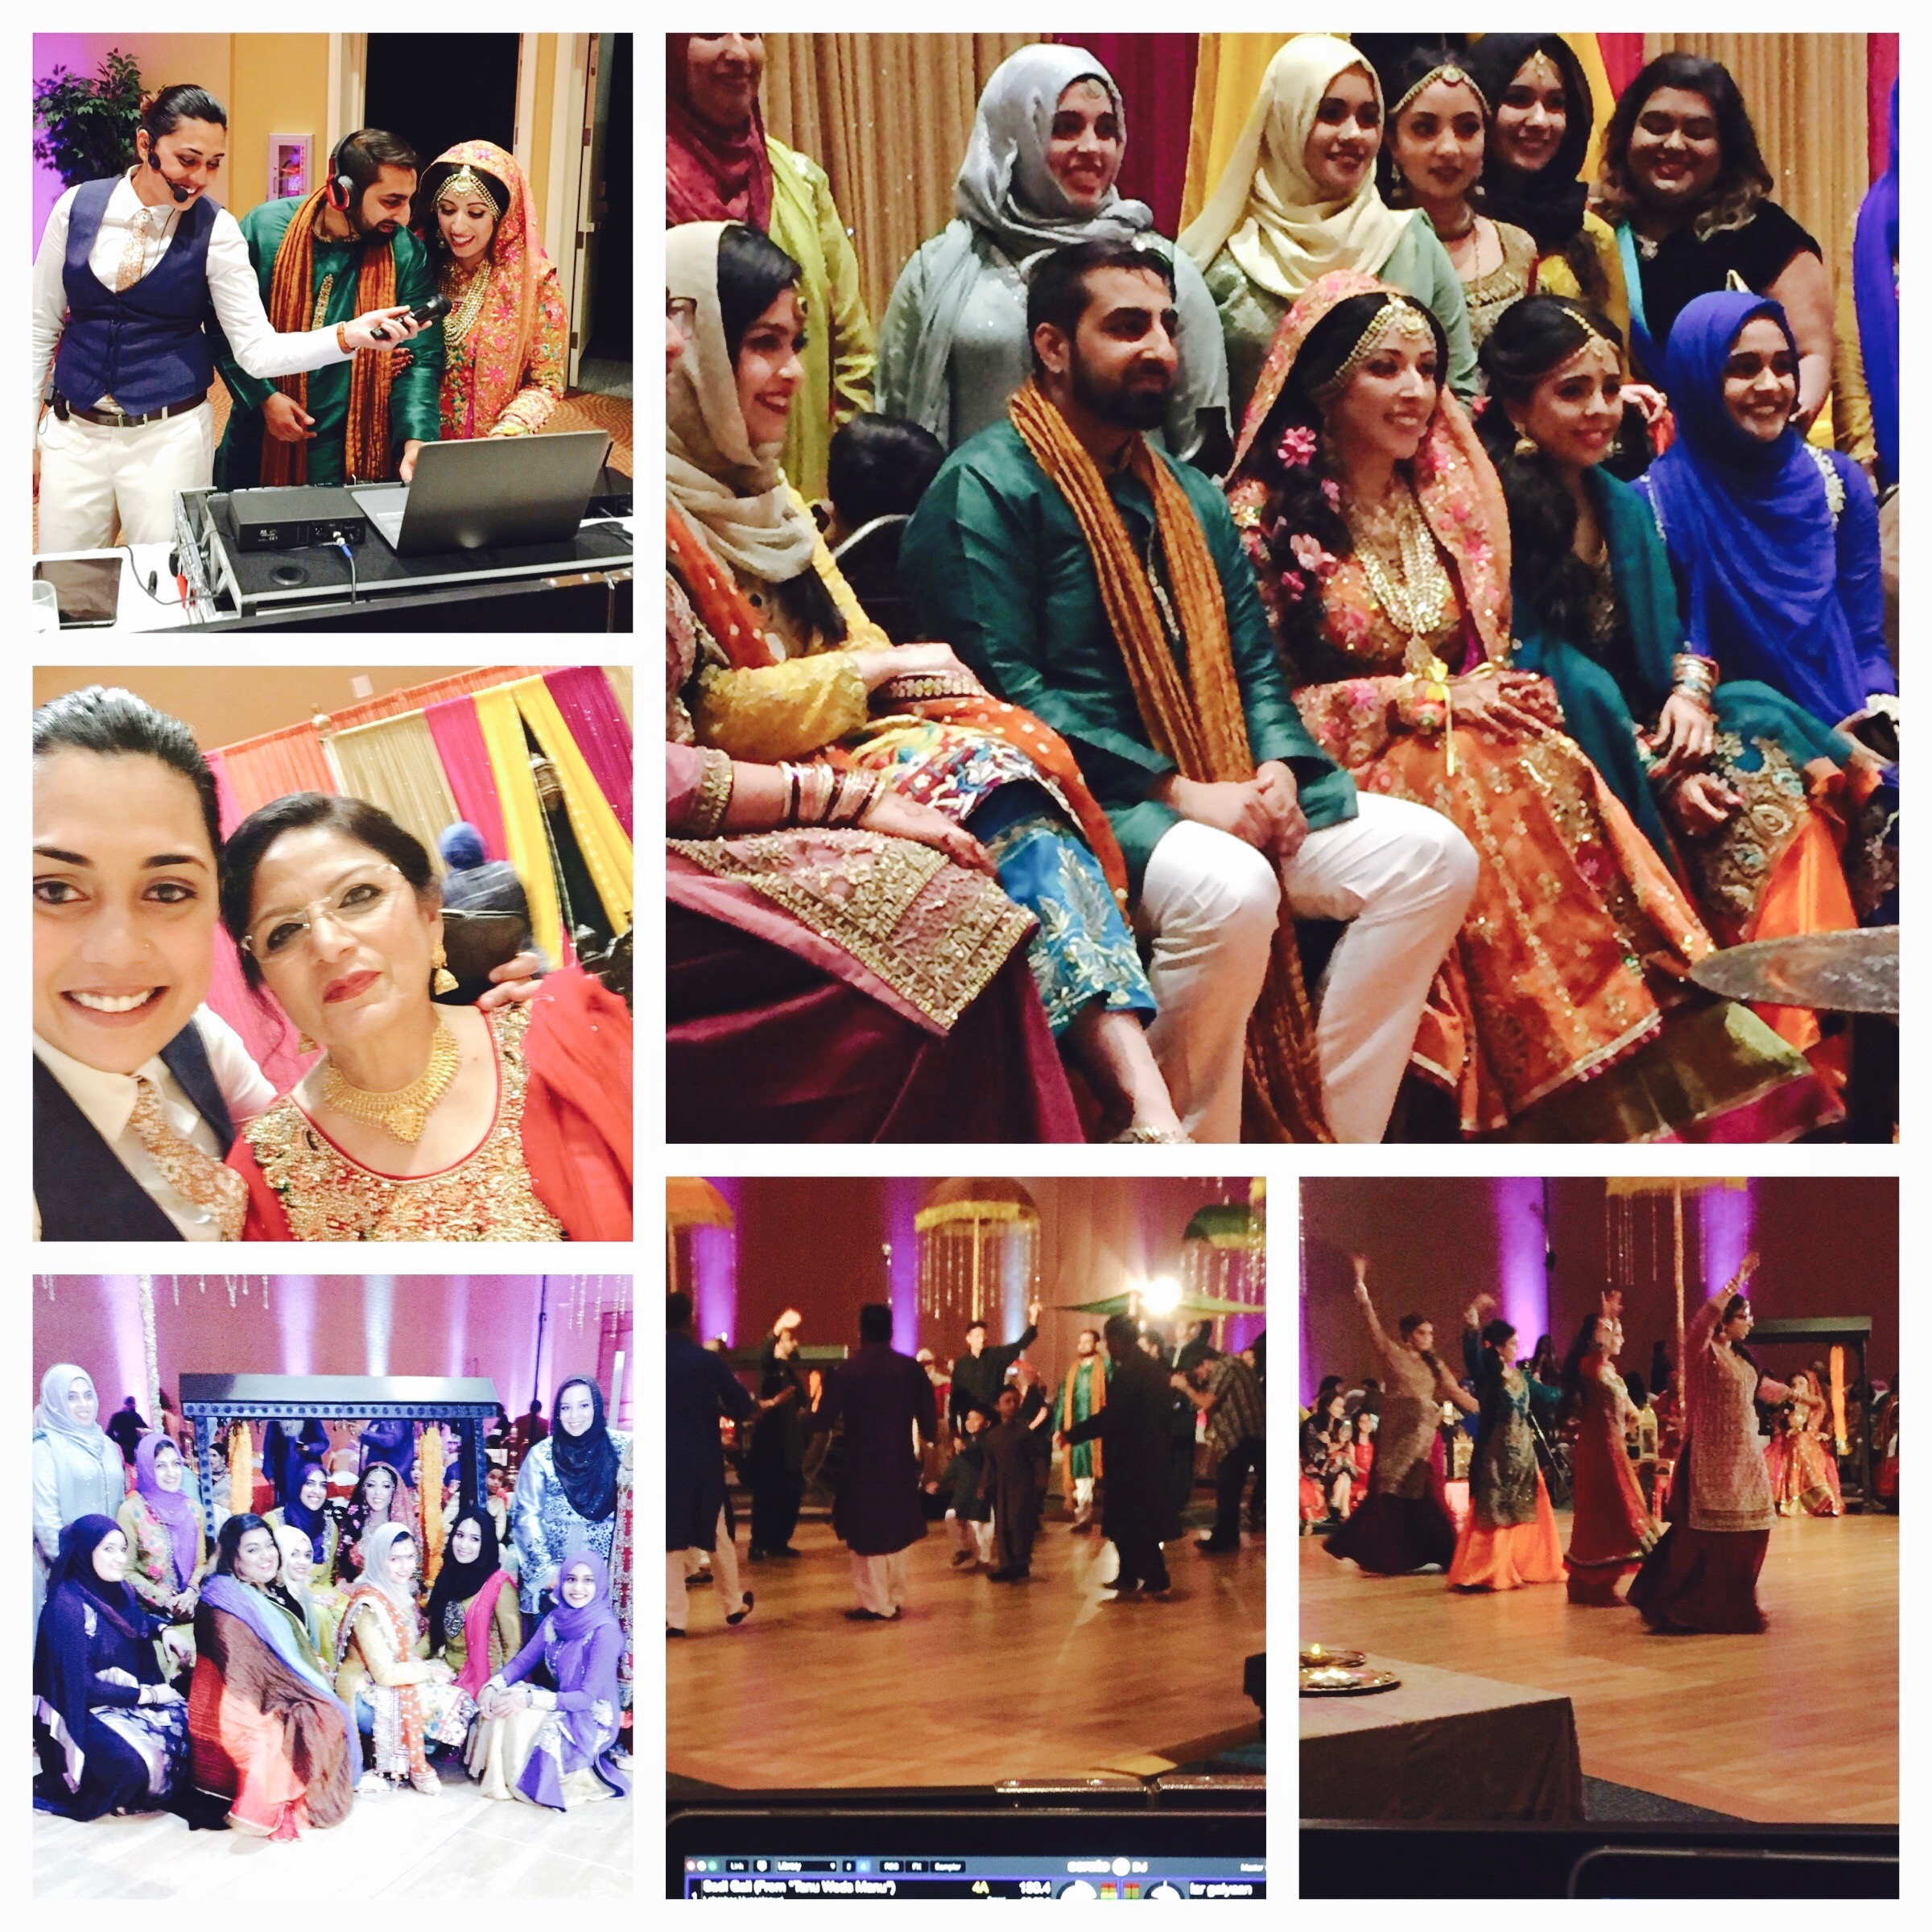 Aqsa and omar's mehndi/henna night